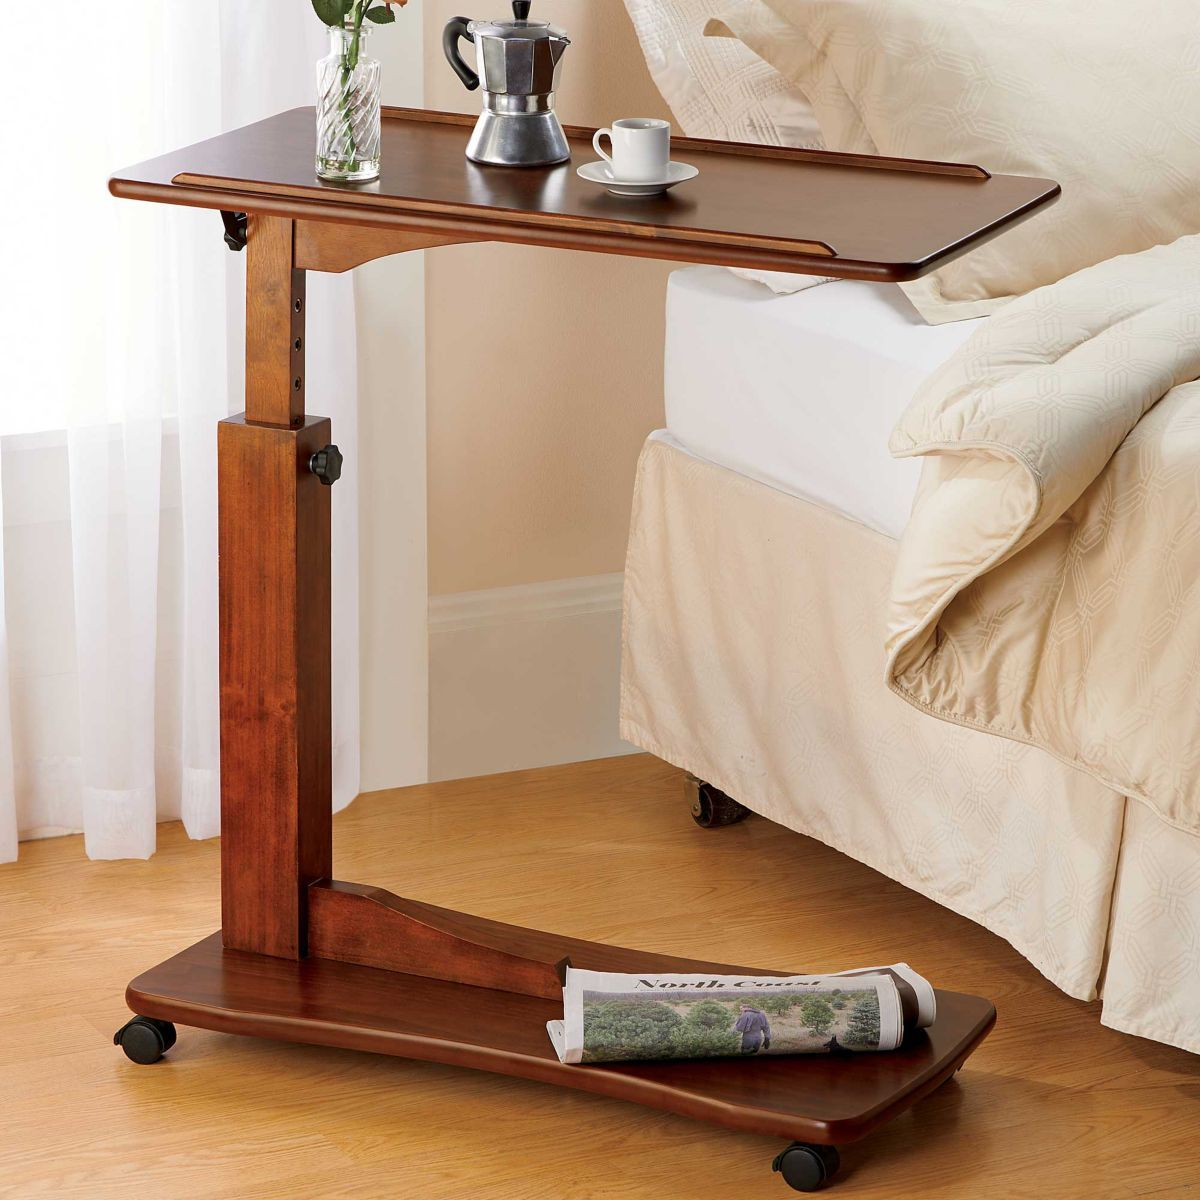 Adjustable Table Overbed table, Bedrooms and Adjustable beds